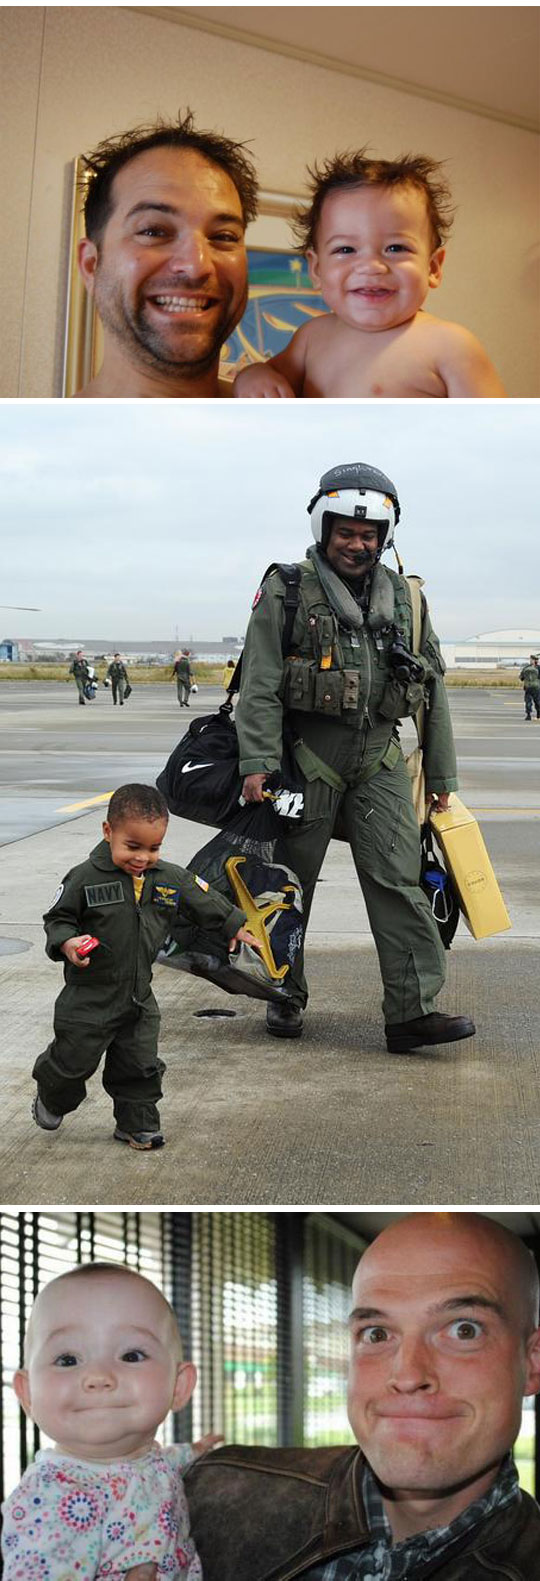 funny-father-like-son-pilot-airport